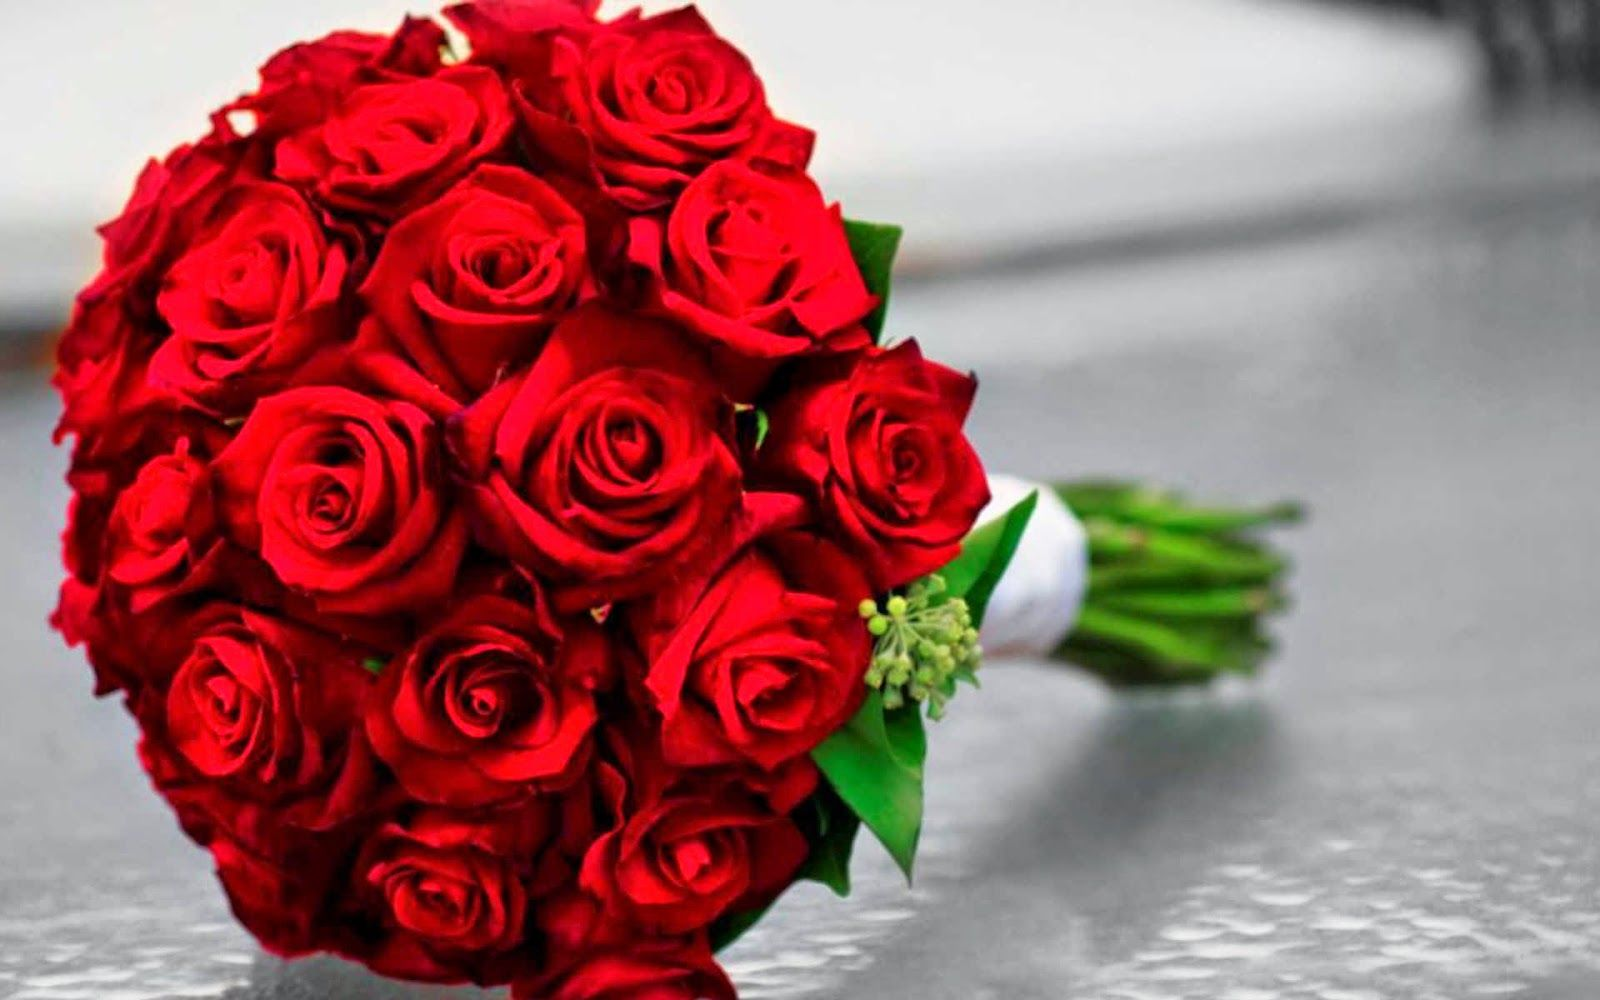 250+ Best Rose Day HD wallpapers 2017 Red rose wedding